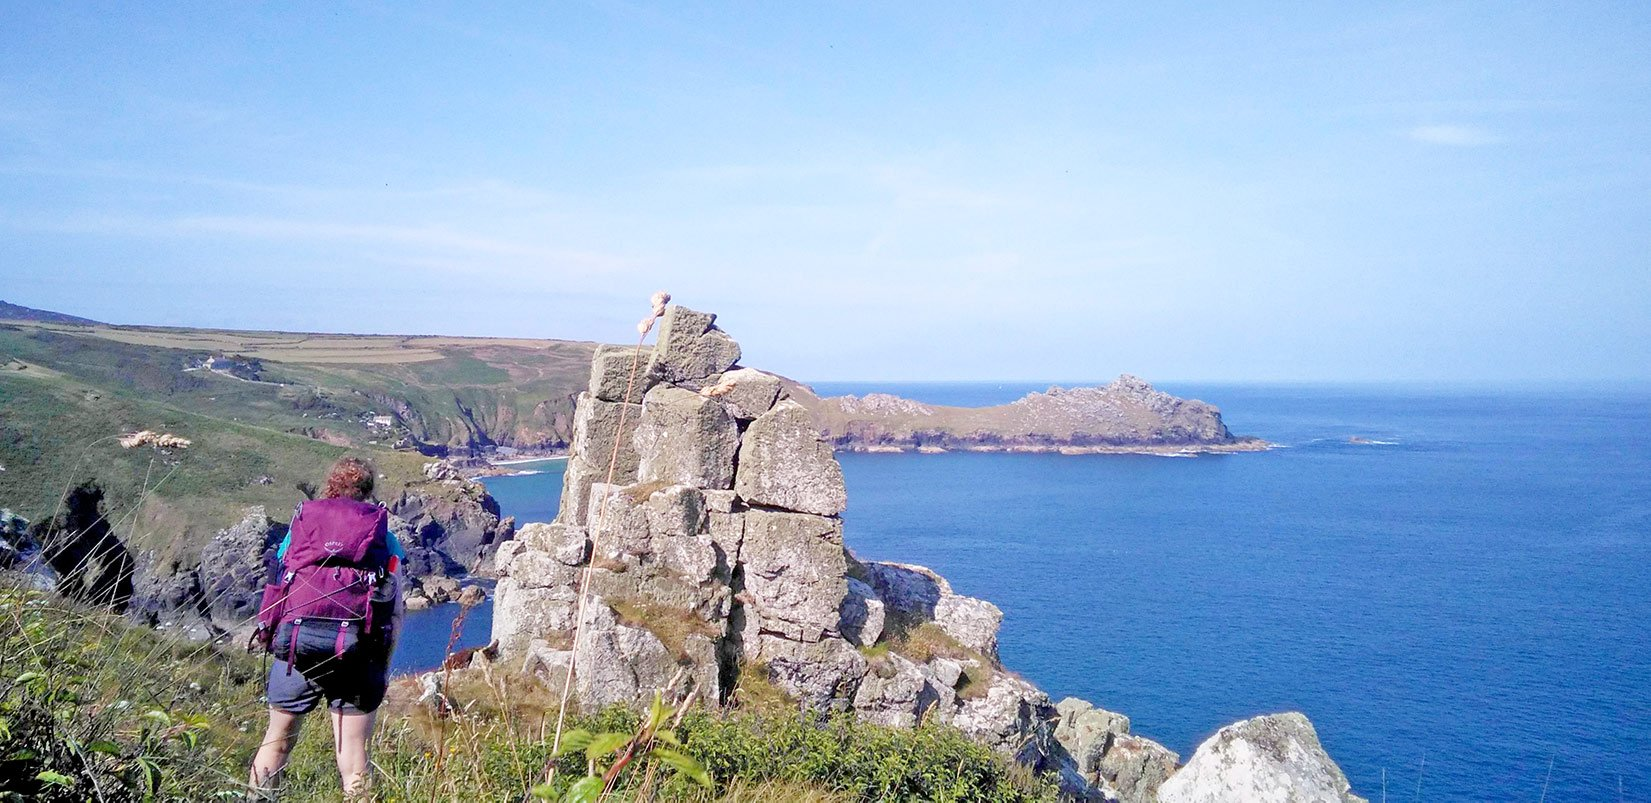 Backpacking on the South West Coast Path in Cornwall at a rocky Gurnards Head